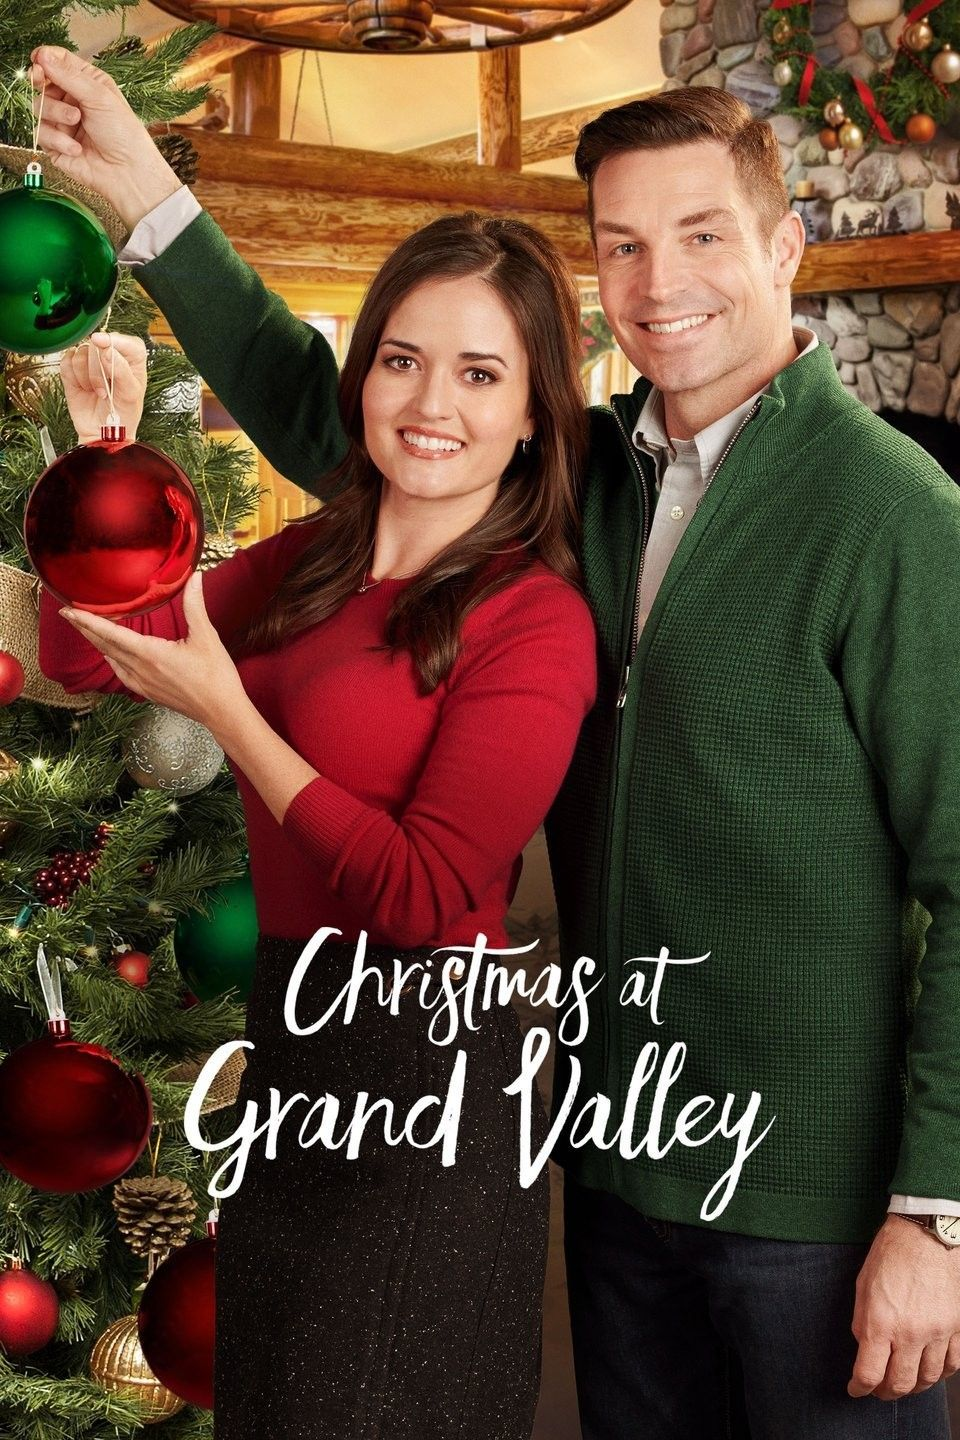 I watched this Hallmark Christmas movie, yesterday. I liked it, but it reminded me if anot ...